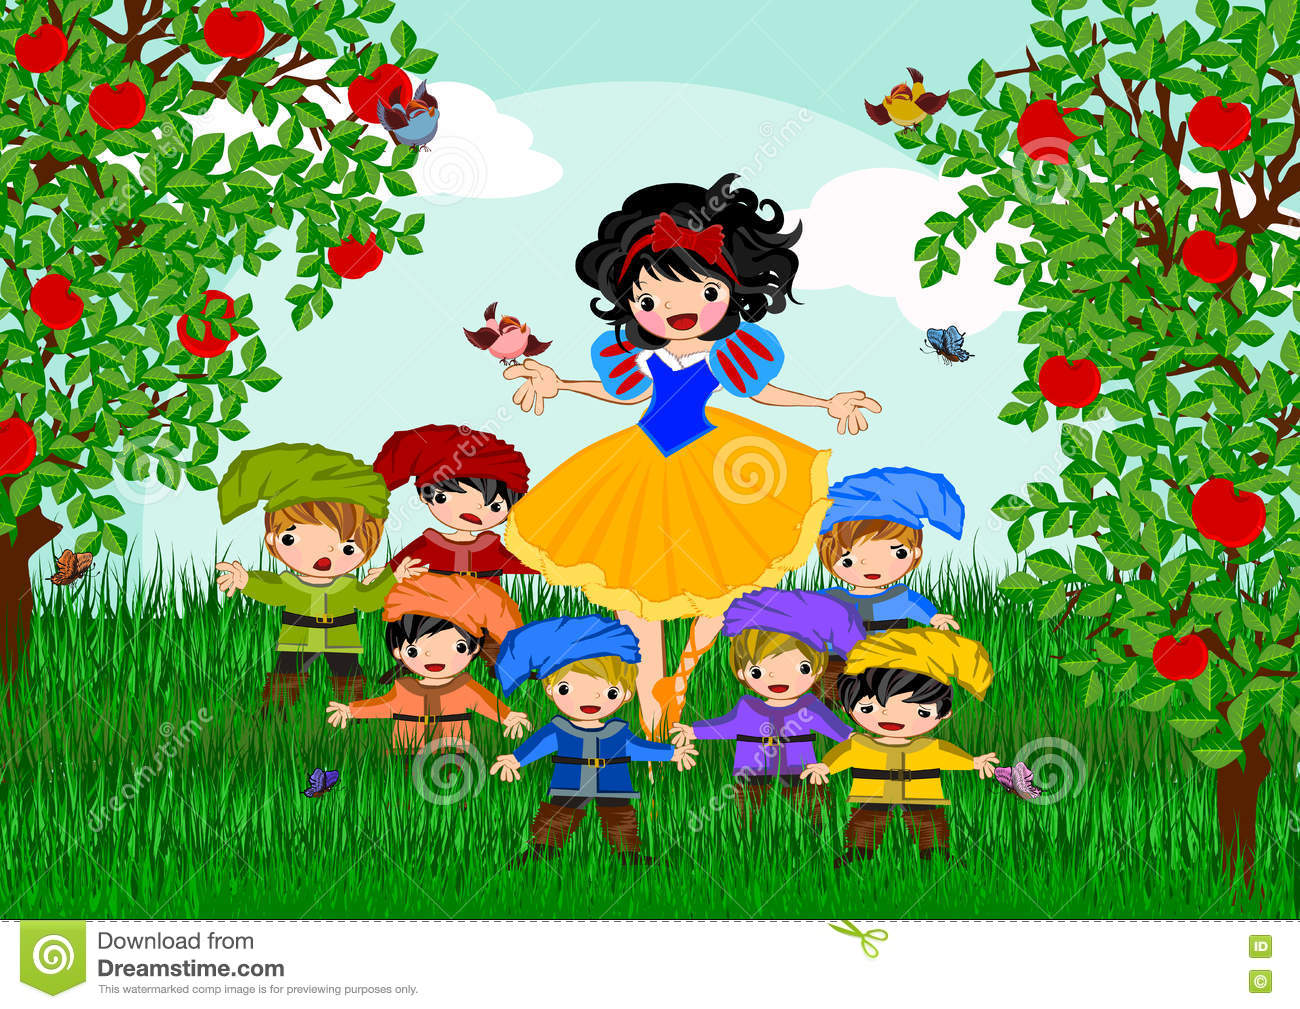 Snow white stock illustration  Illustration of children - 73921720